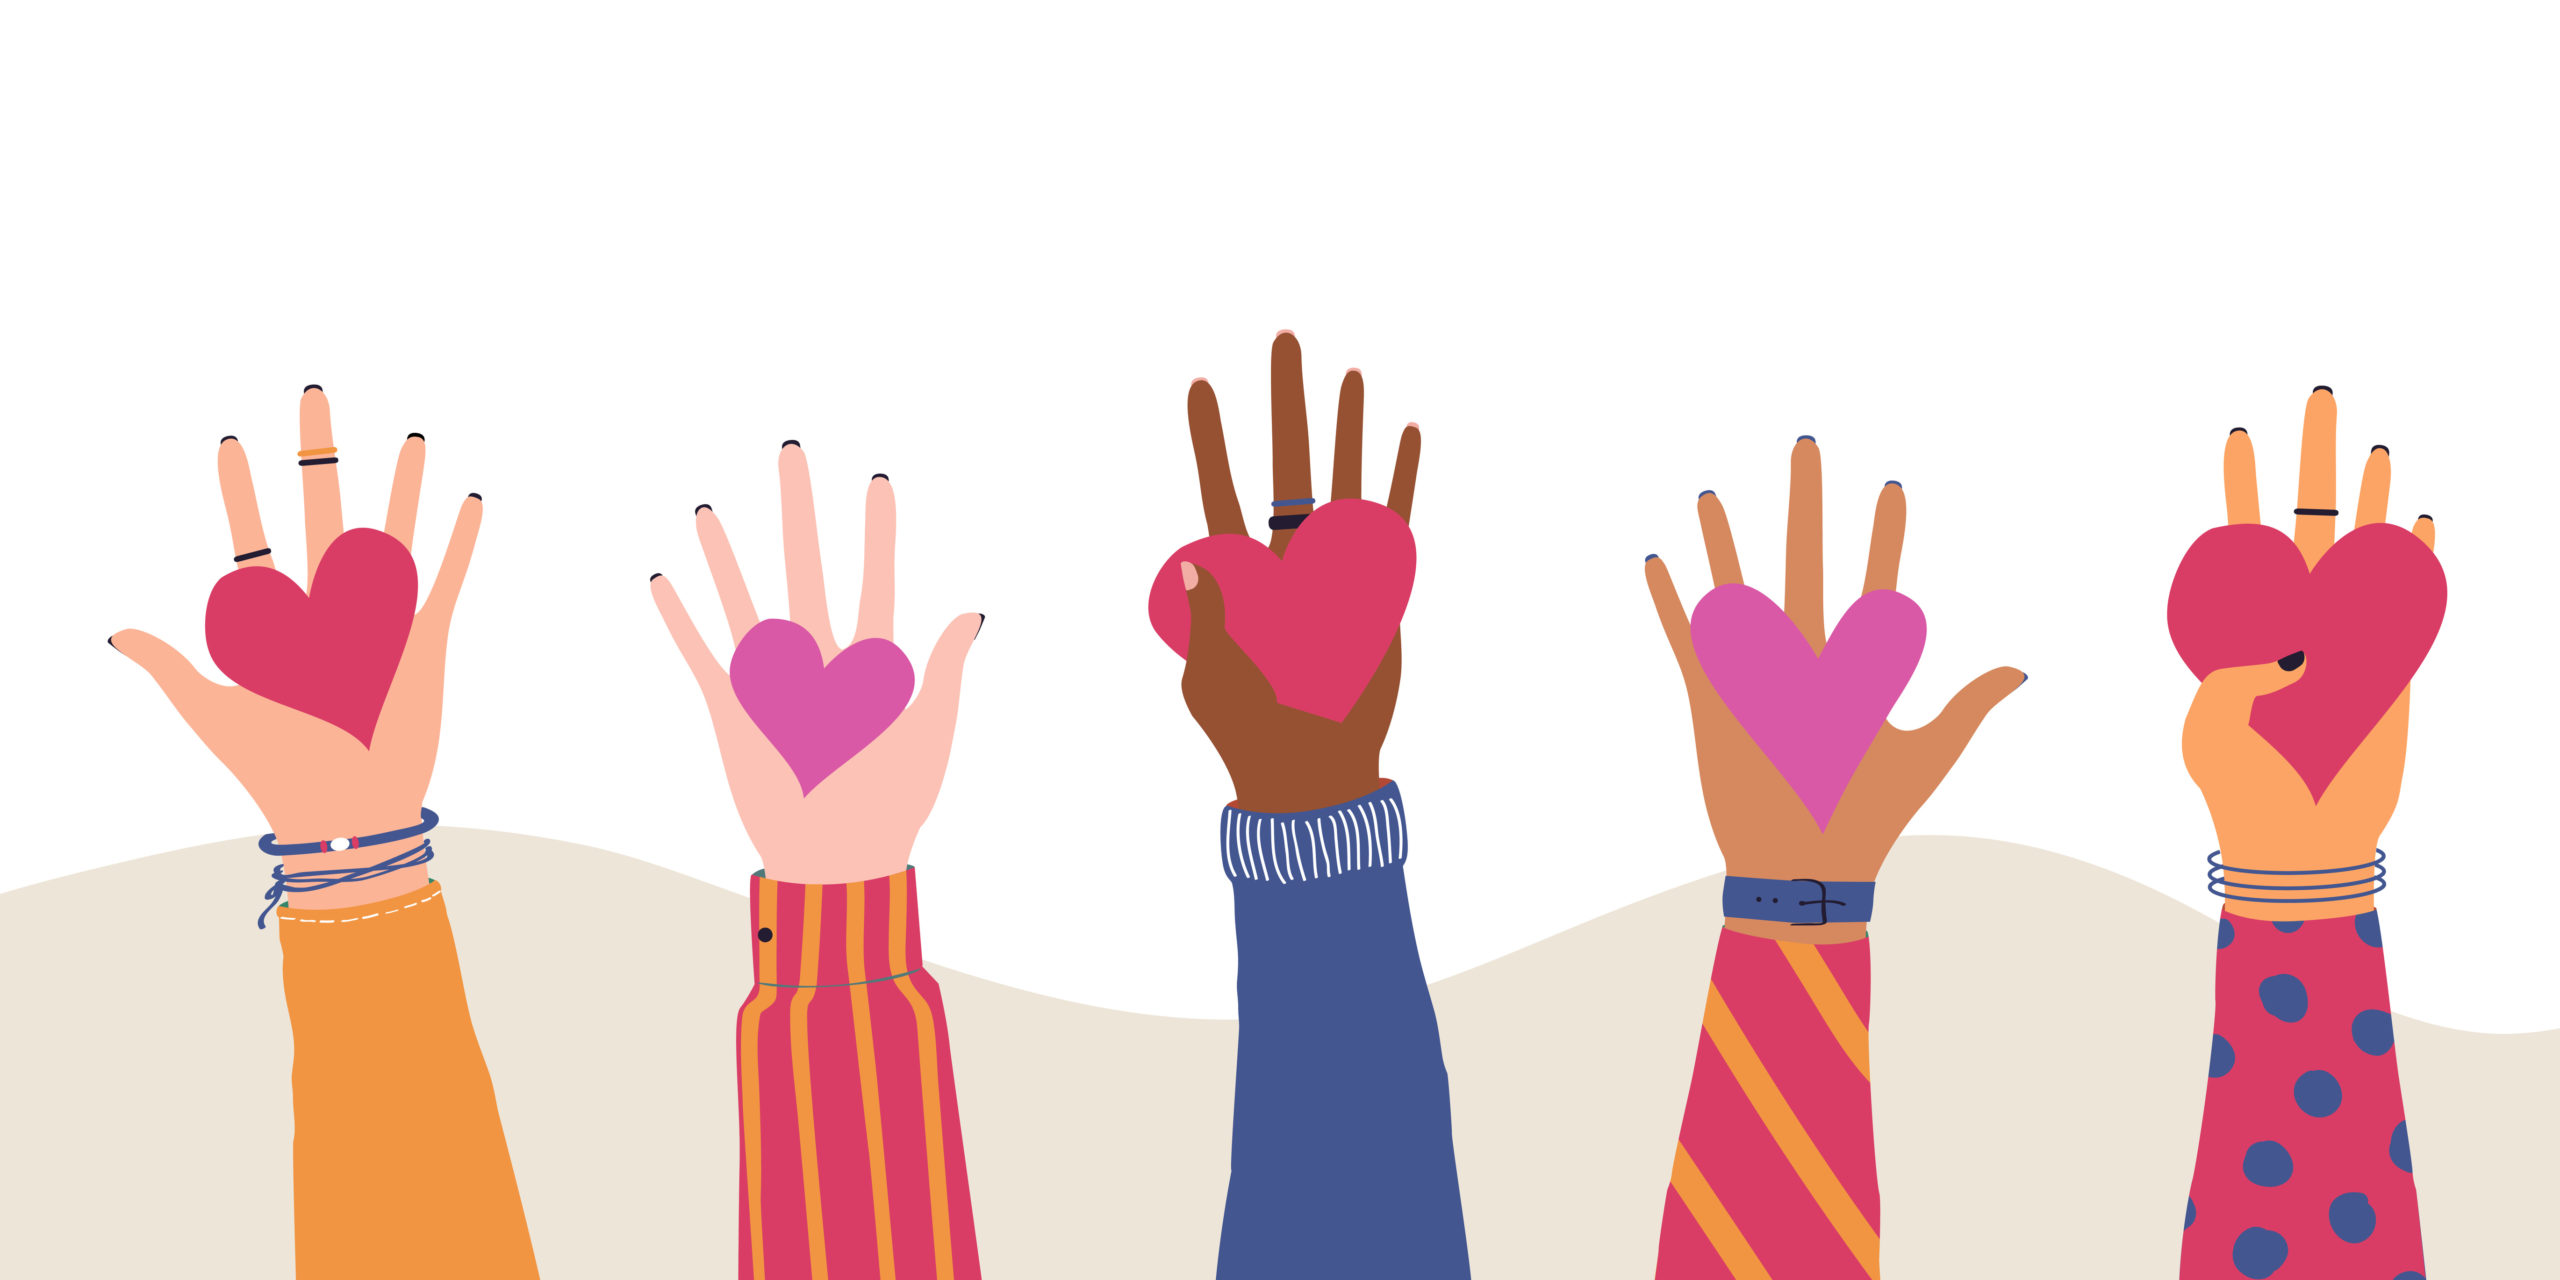 Vector trendy illustration with different hands holding heart. Concept of giving and sharing love to people, volunteering, charity, cooperation